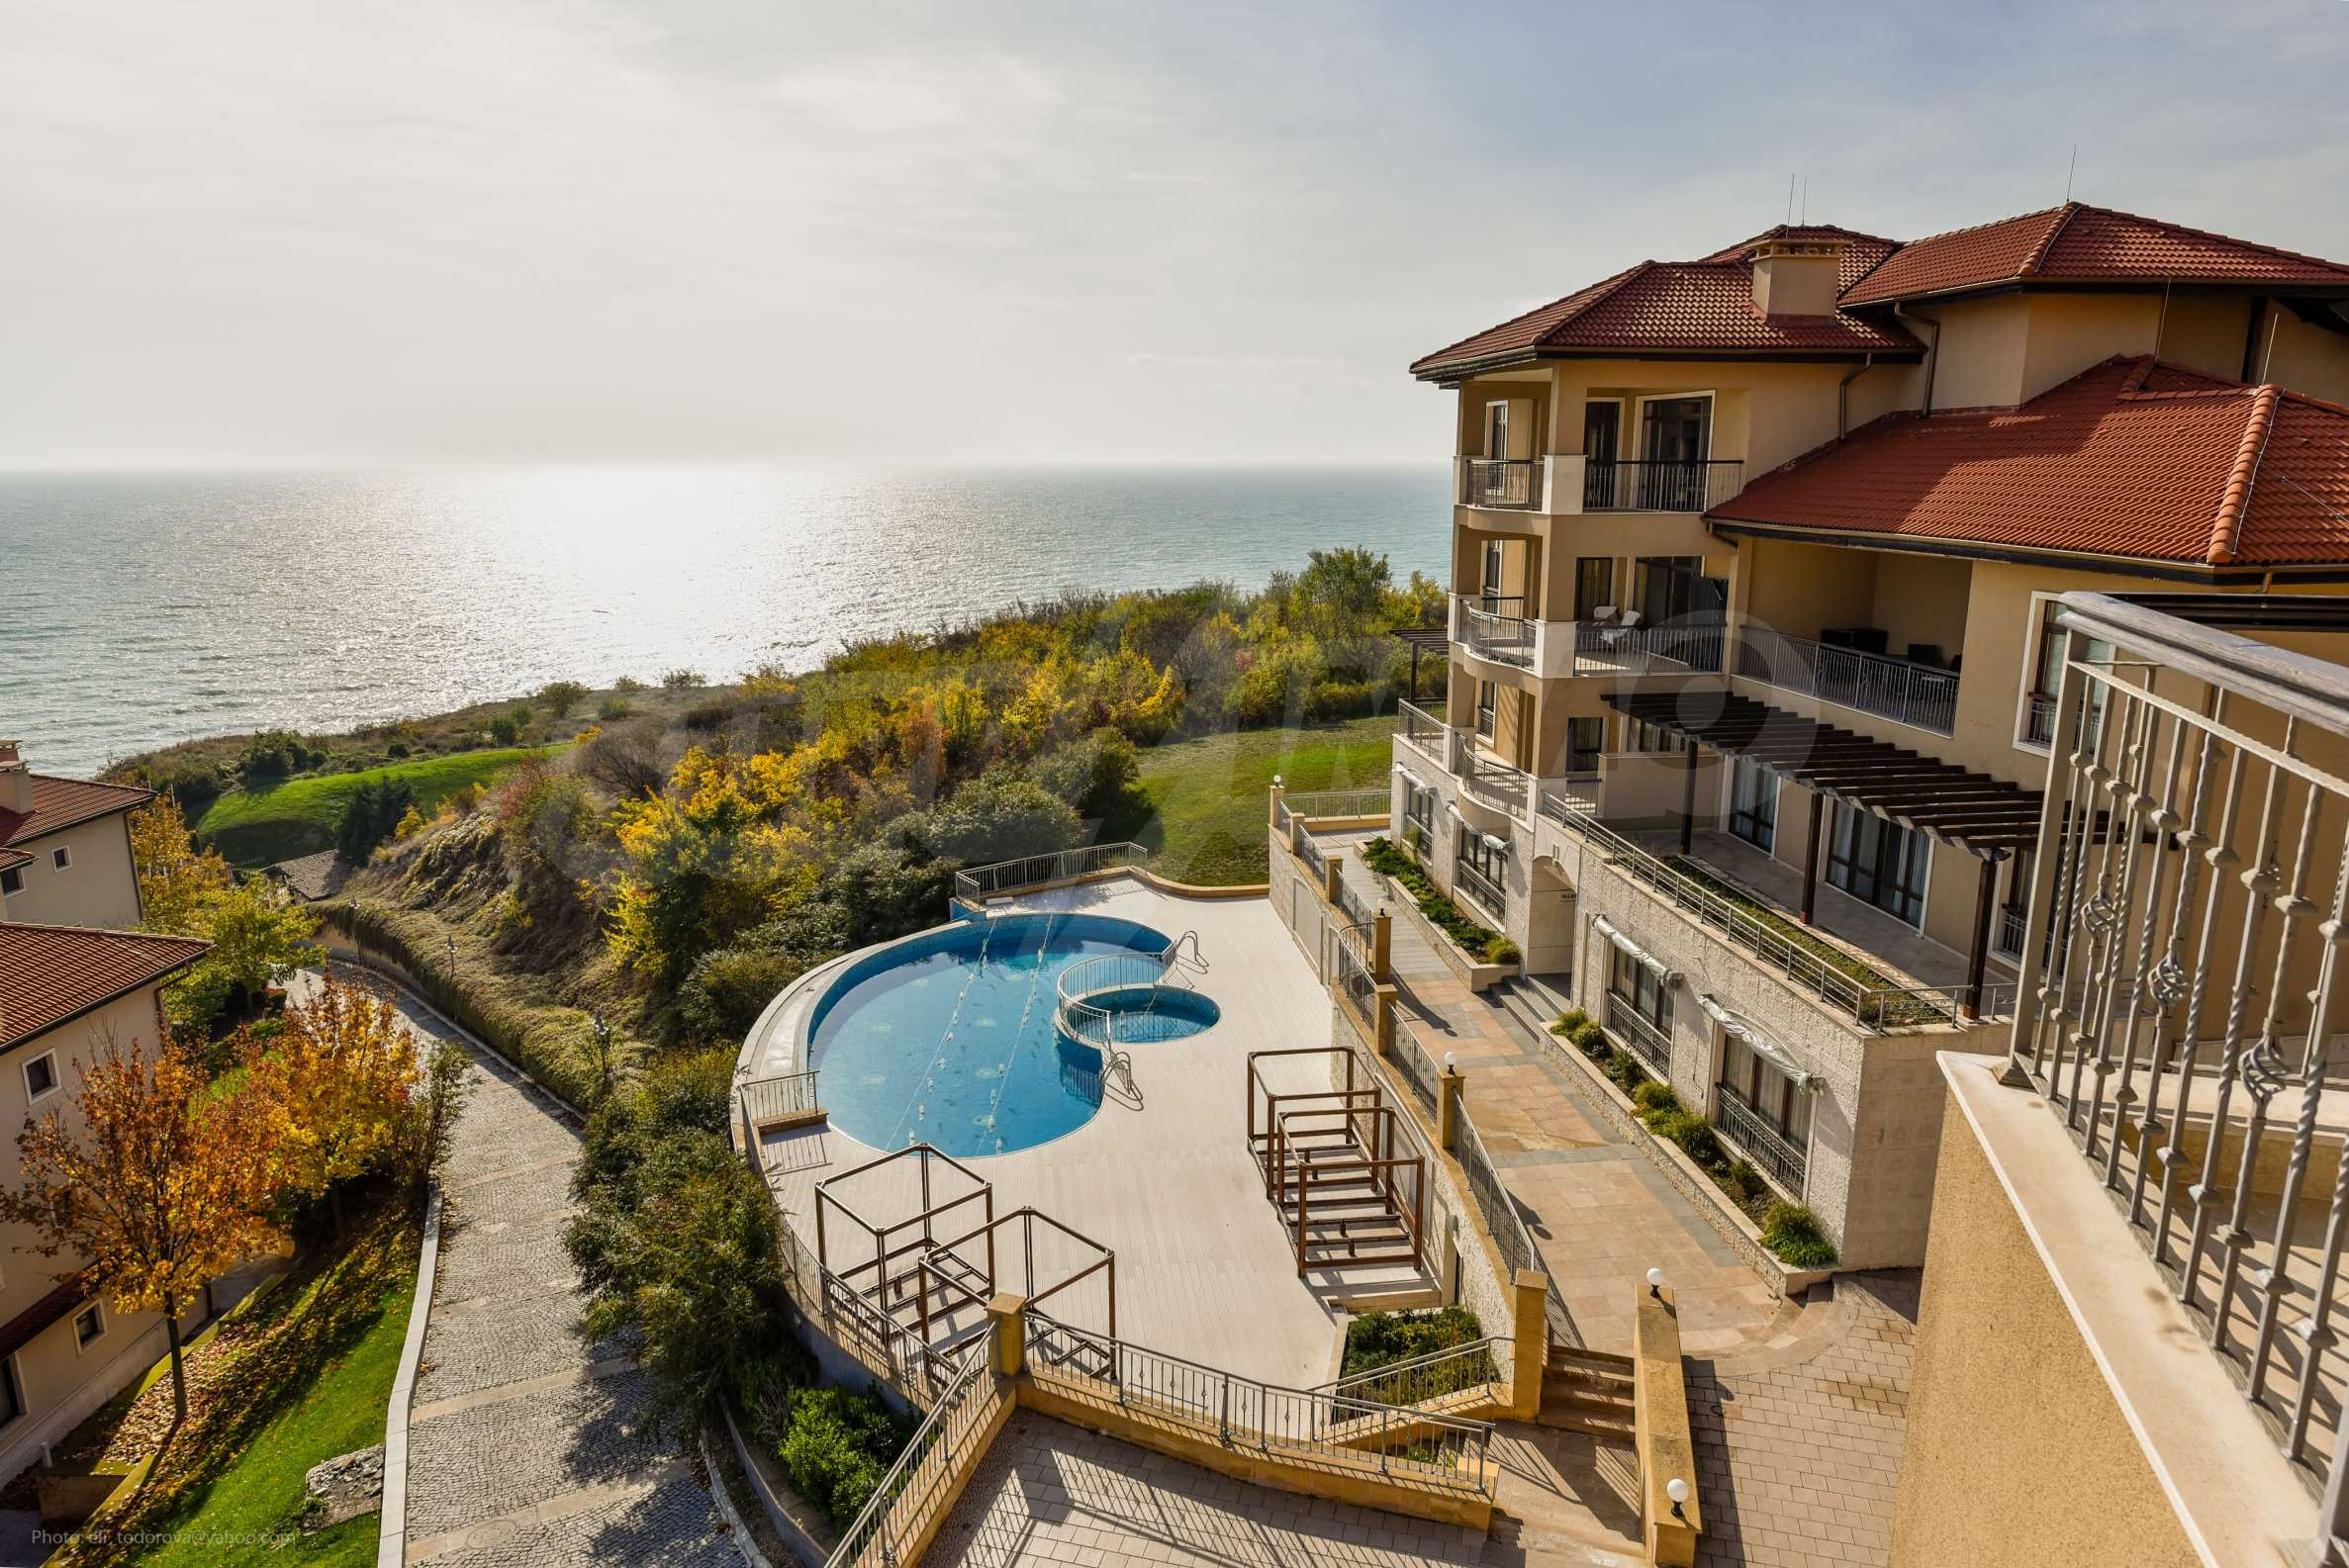 Thracian Cliffs Golf & Beach Resort - a world class golf resort